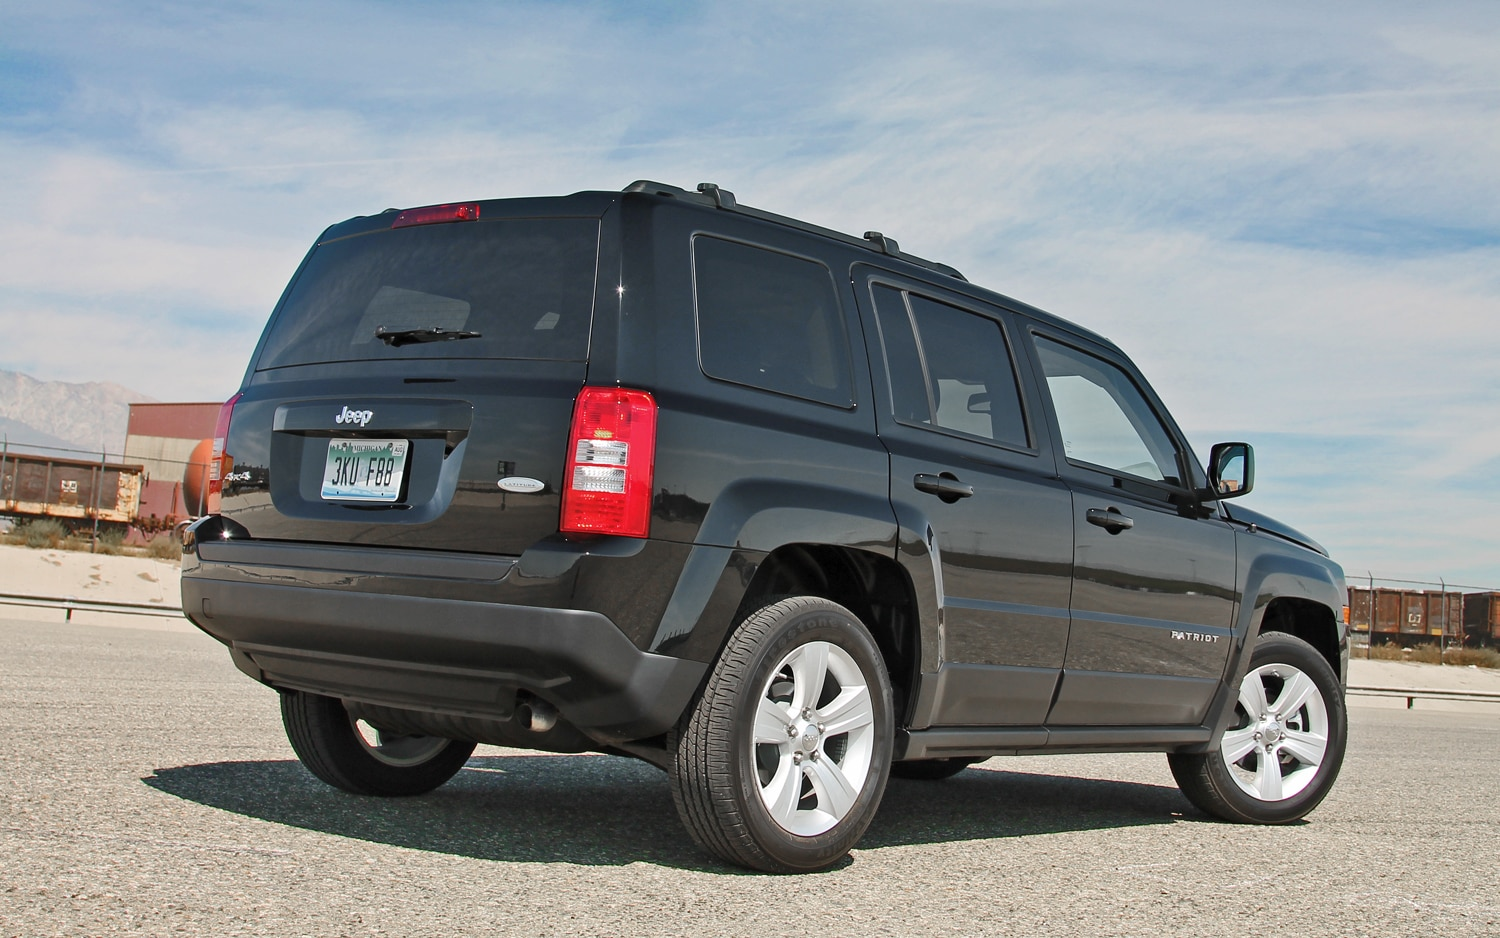 2013 Jeep Patriot Latitude 4X4 Rear View 03